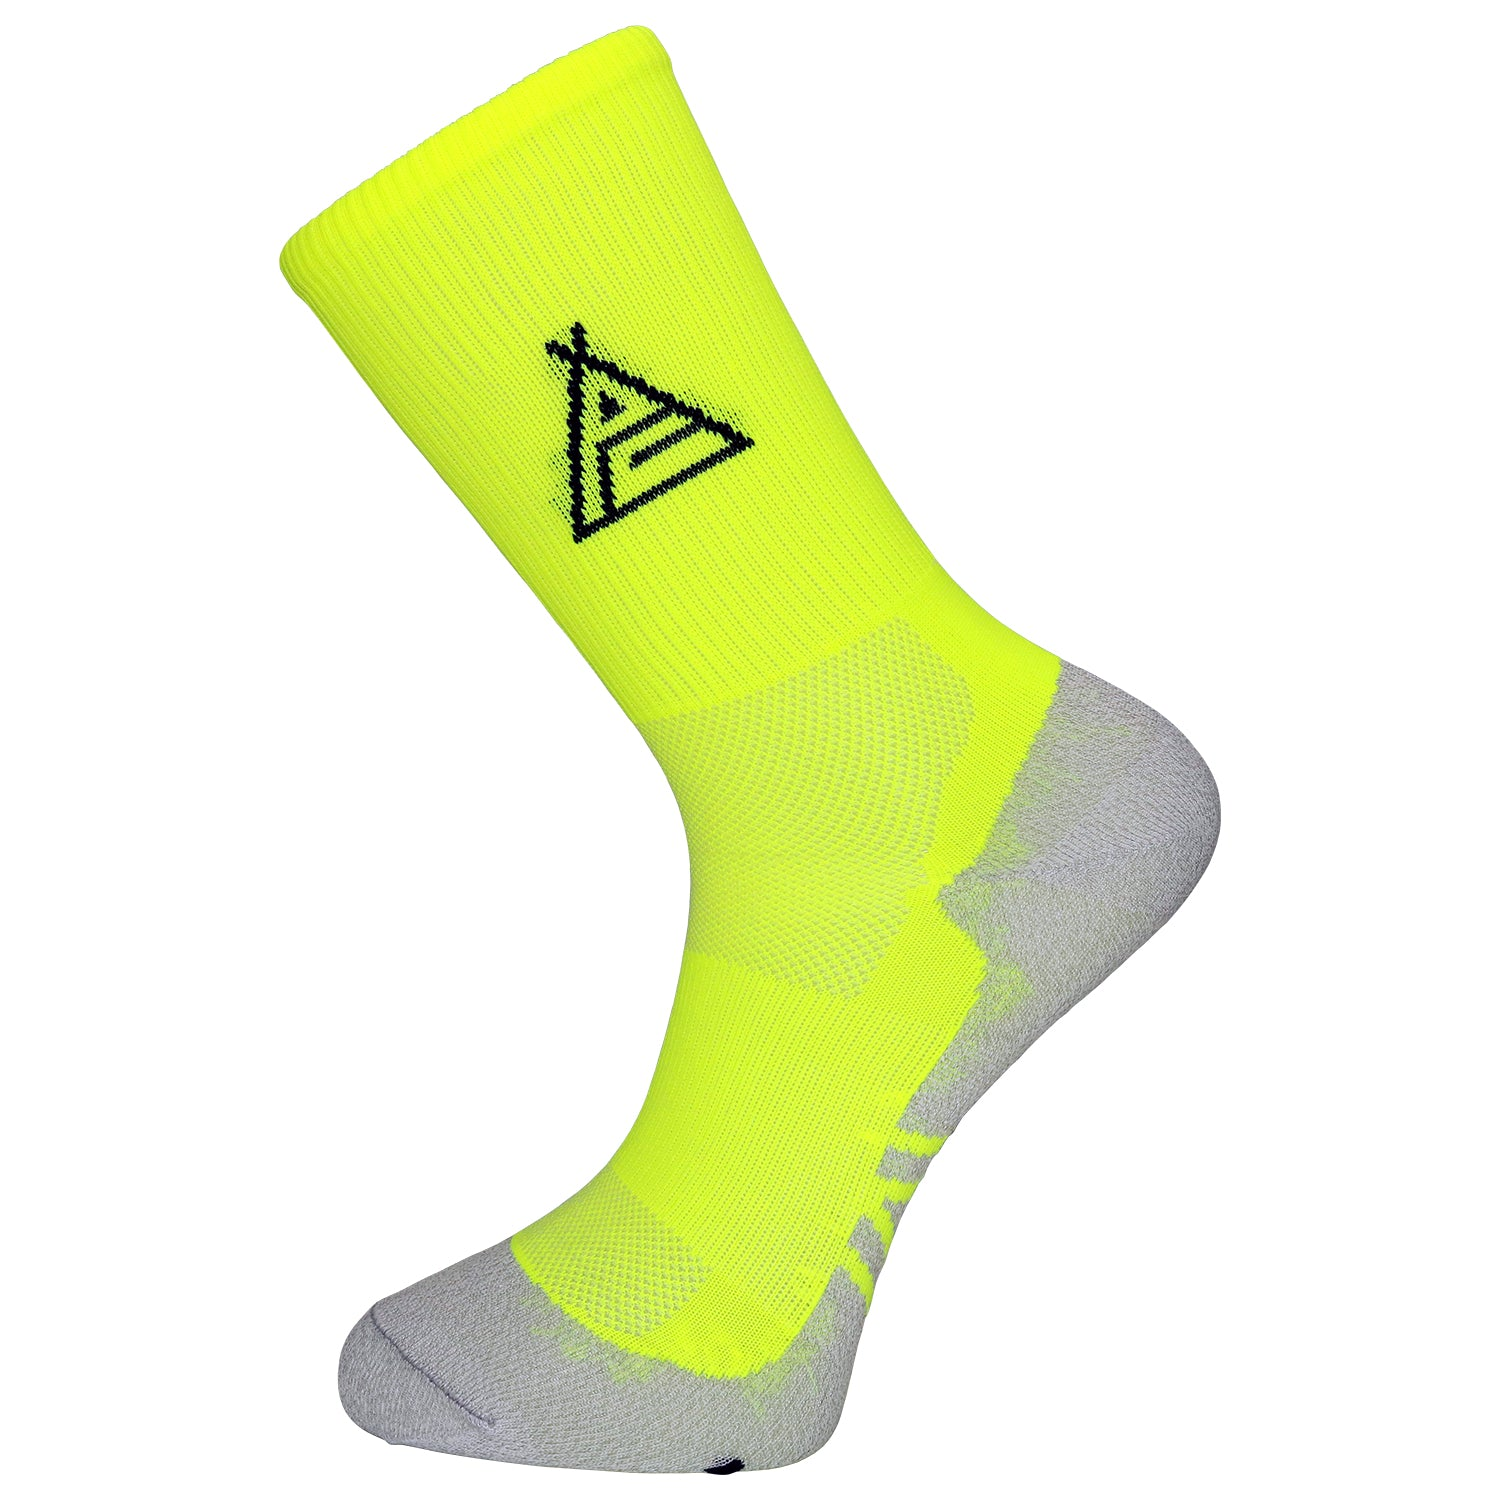 Prendas Spring/Summer Dryarn-Carbon Fluro Yellow Socks